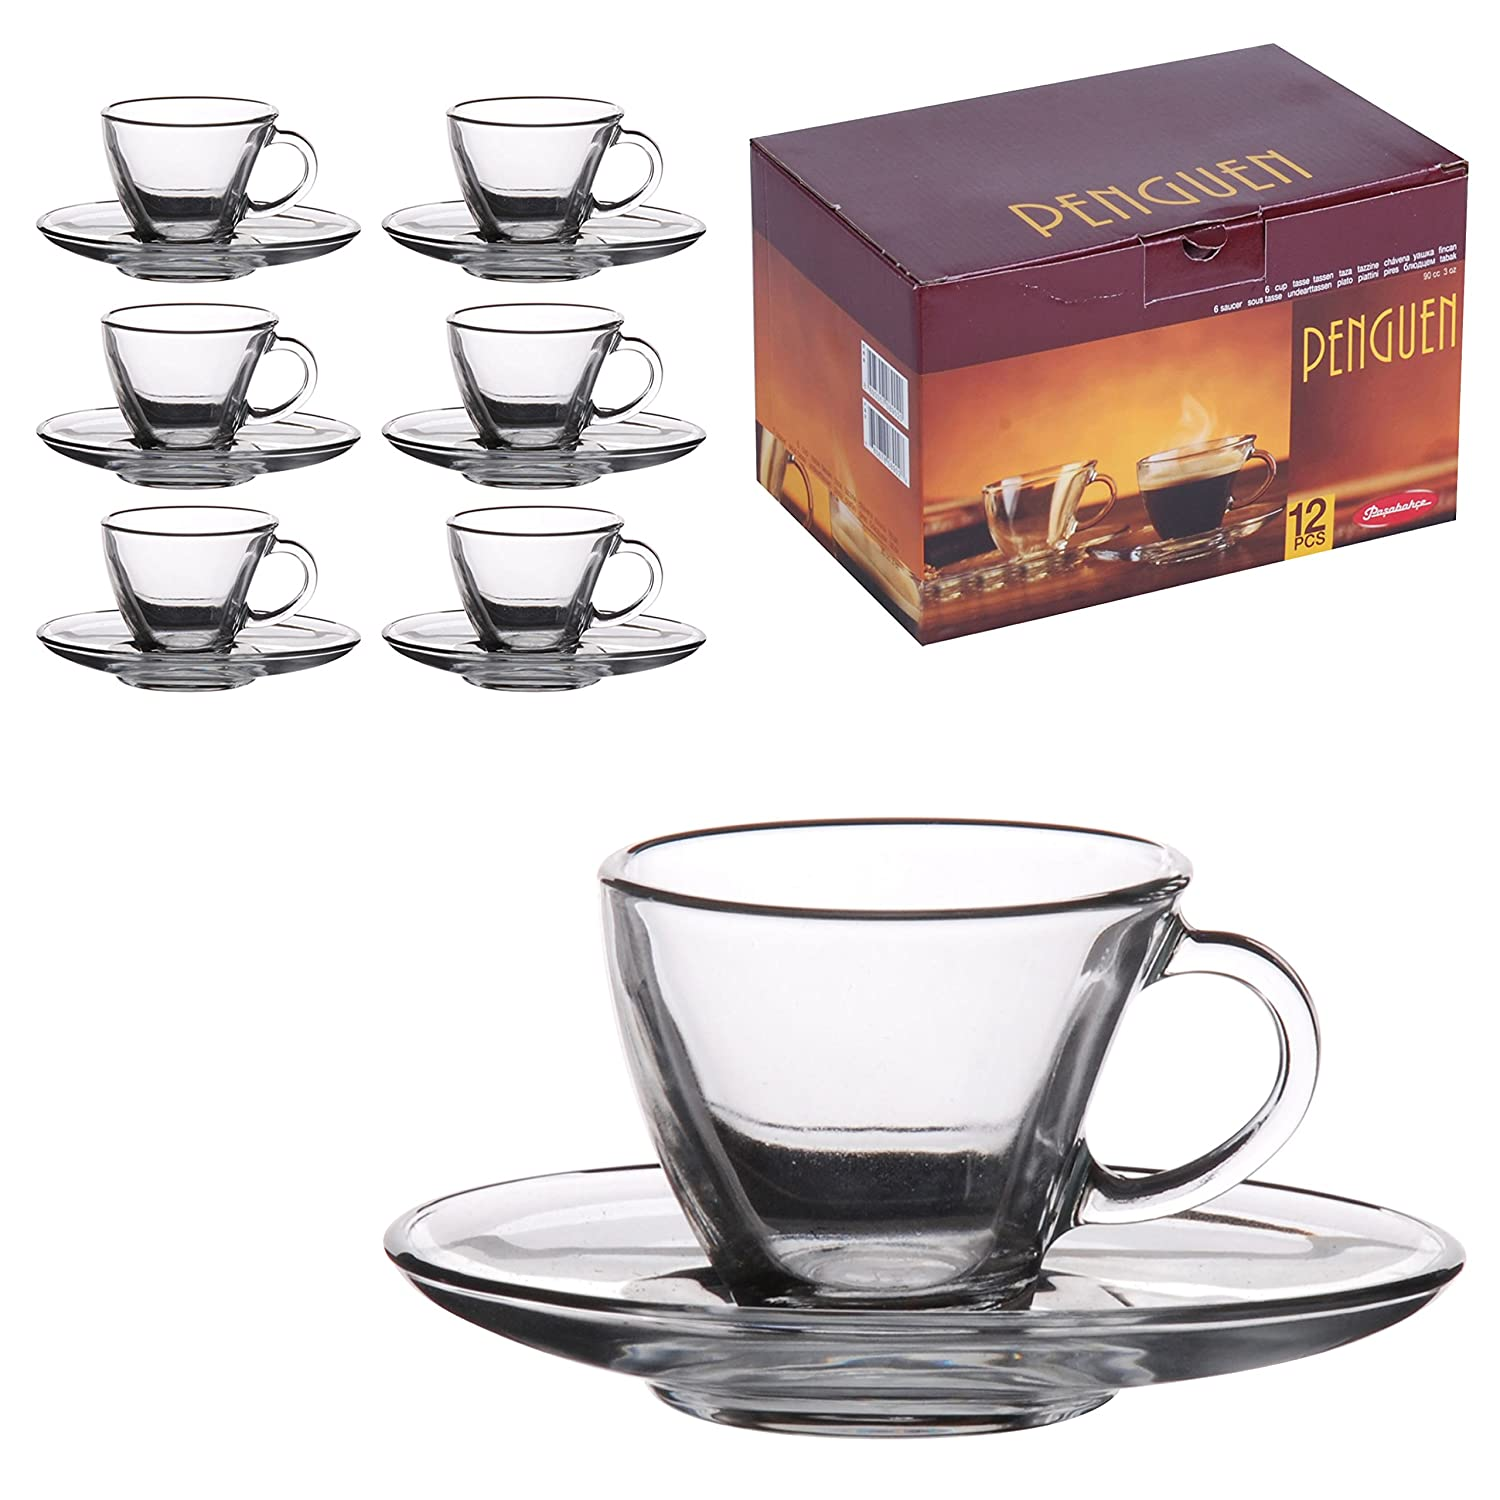 Glass espresso coffee cups uk - 6 Matching Glass Espresso Coffee Cup Saucers 12pc Set Amazon Co Uk Kitchen Home